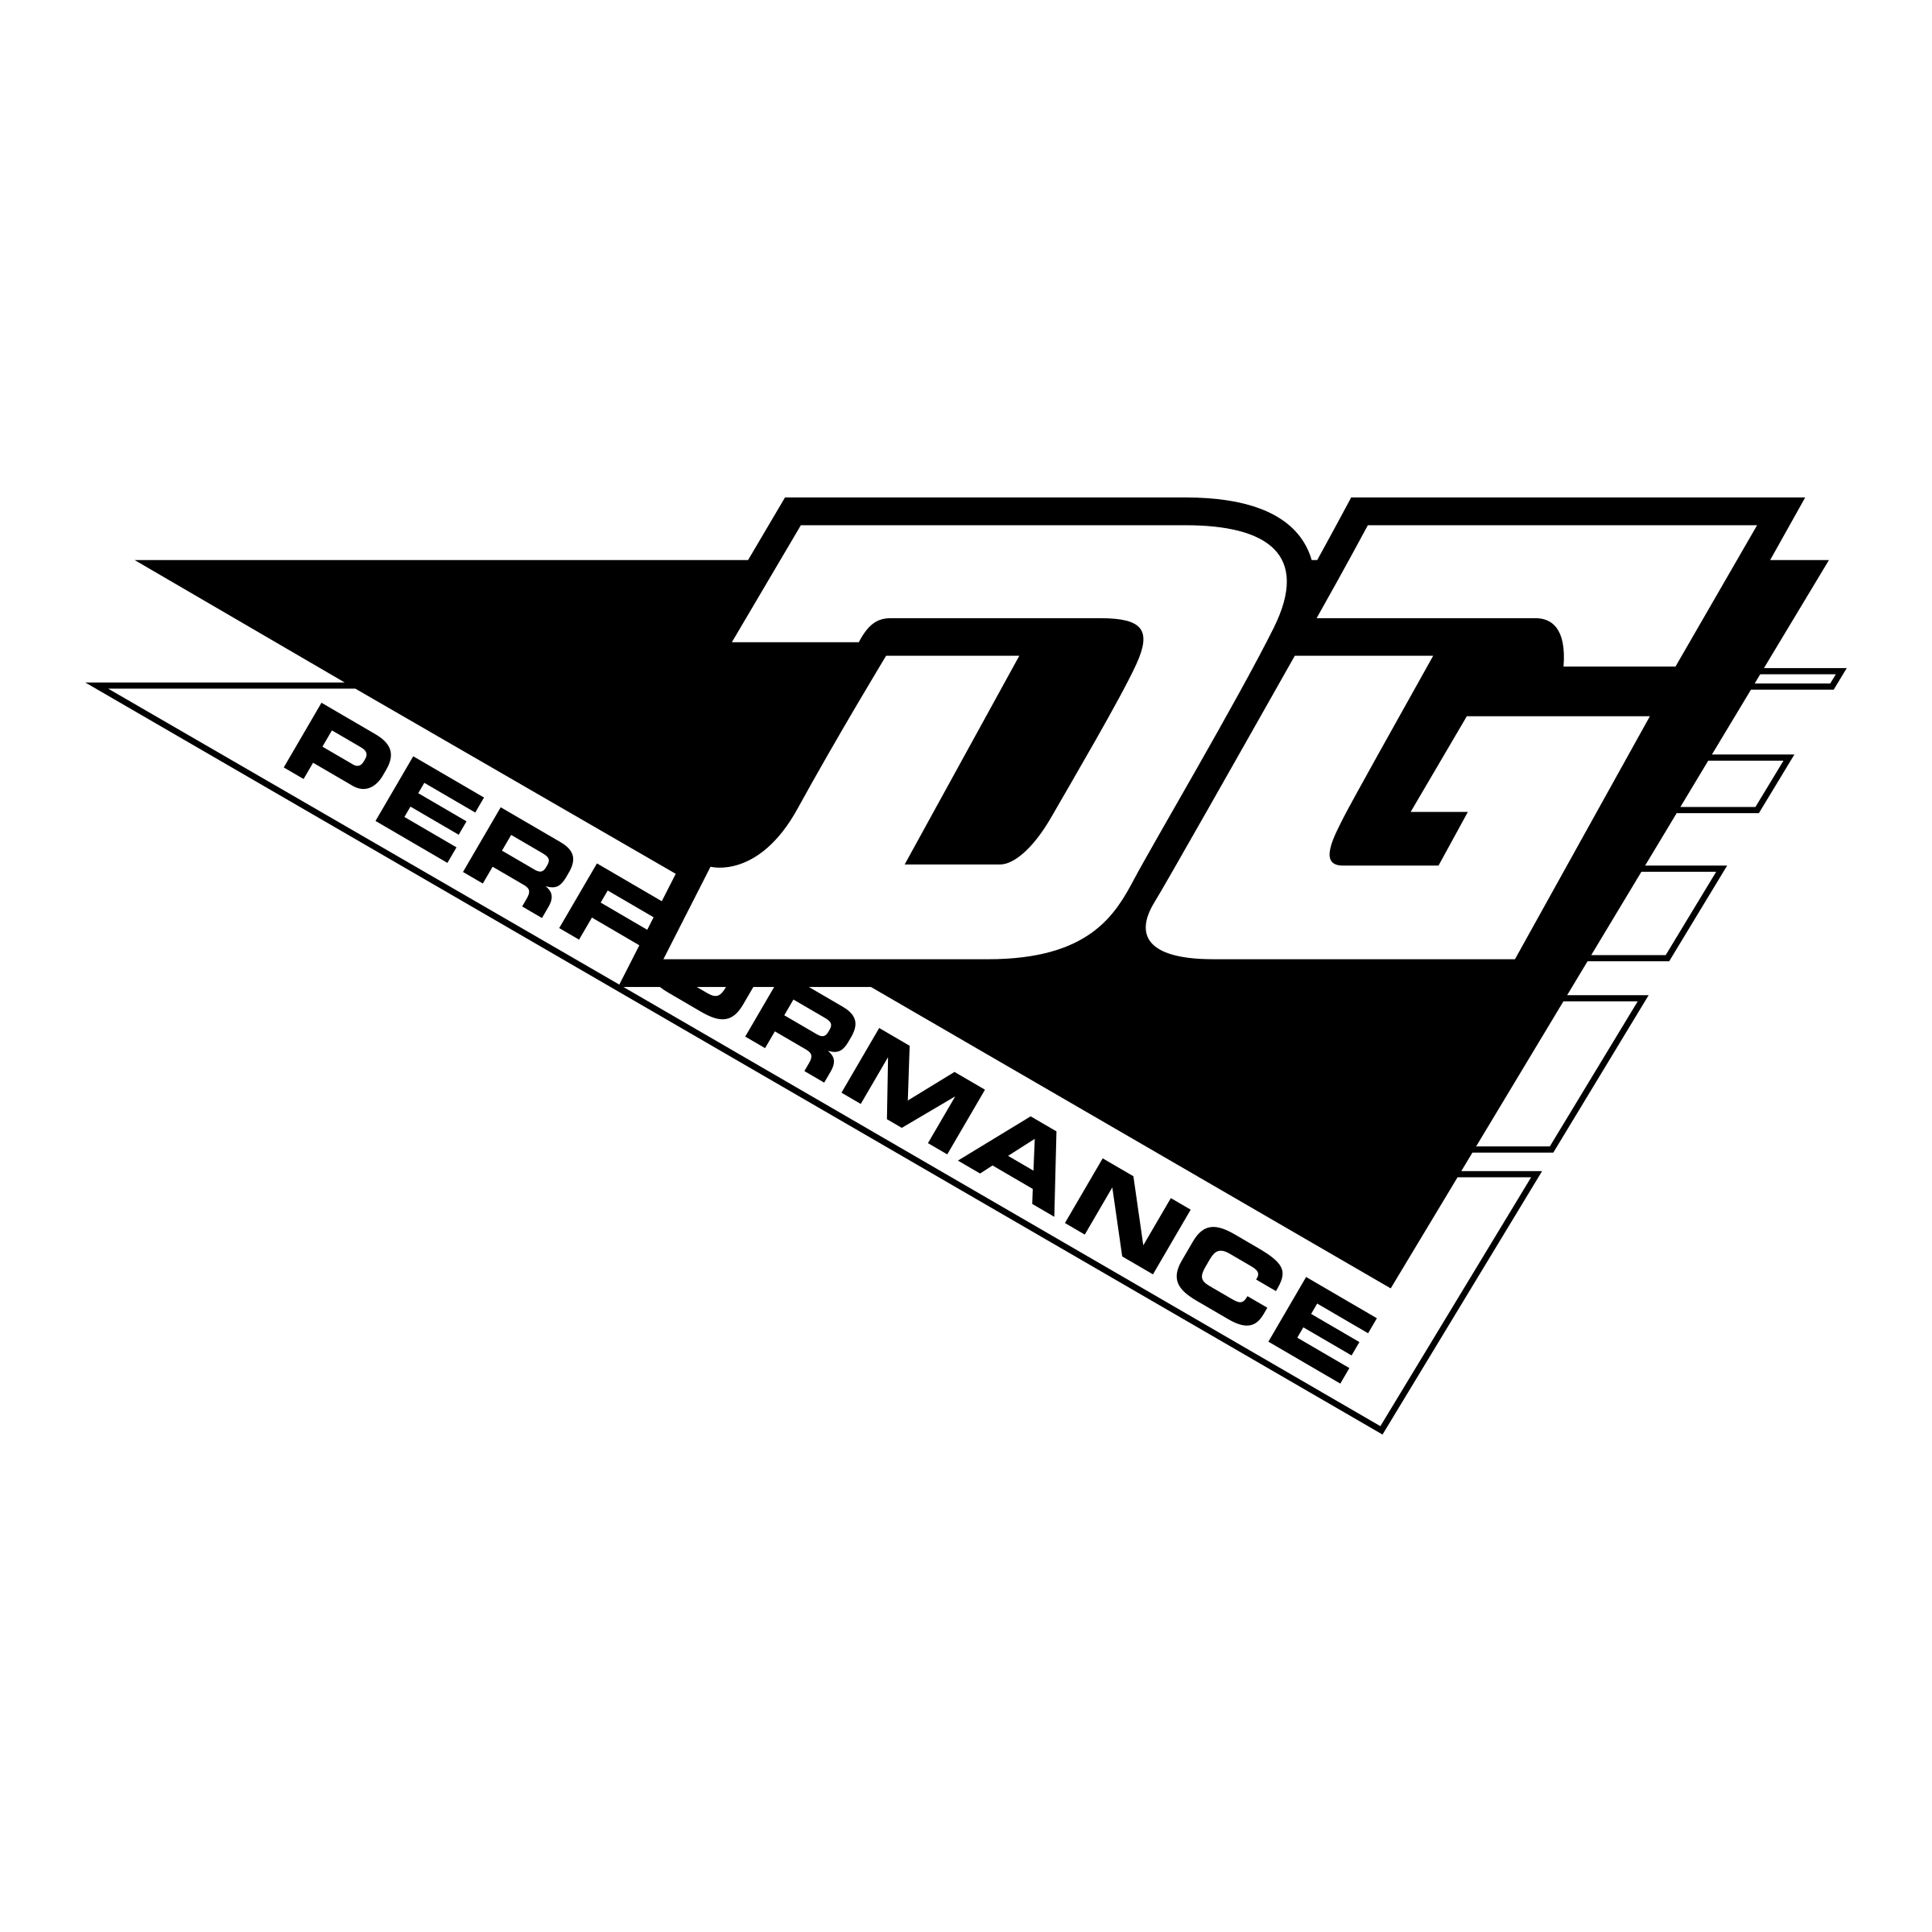 Performance vector. Dg logo png transparent